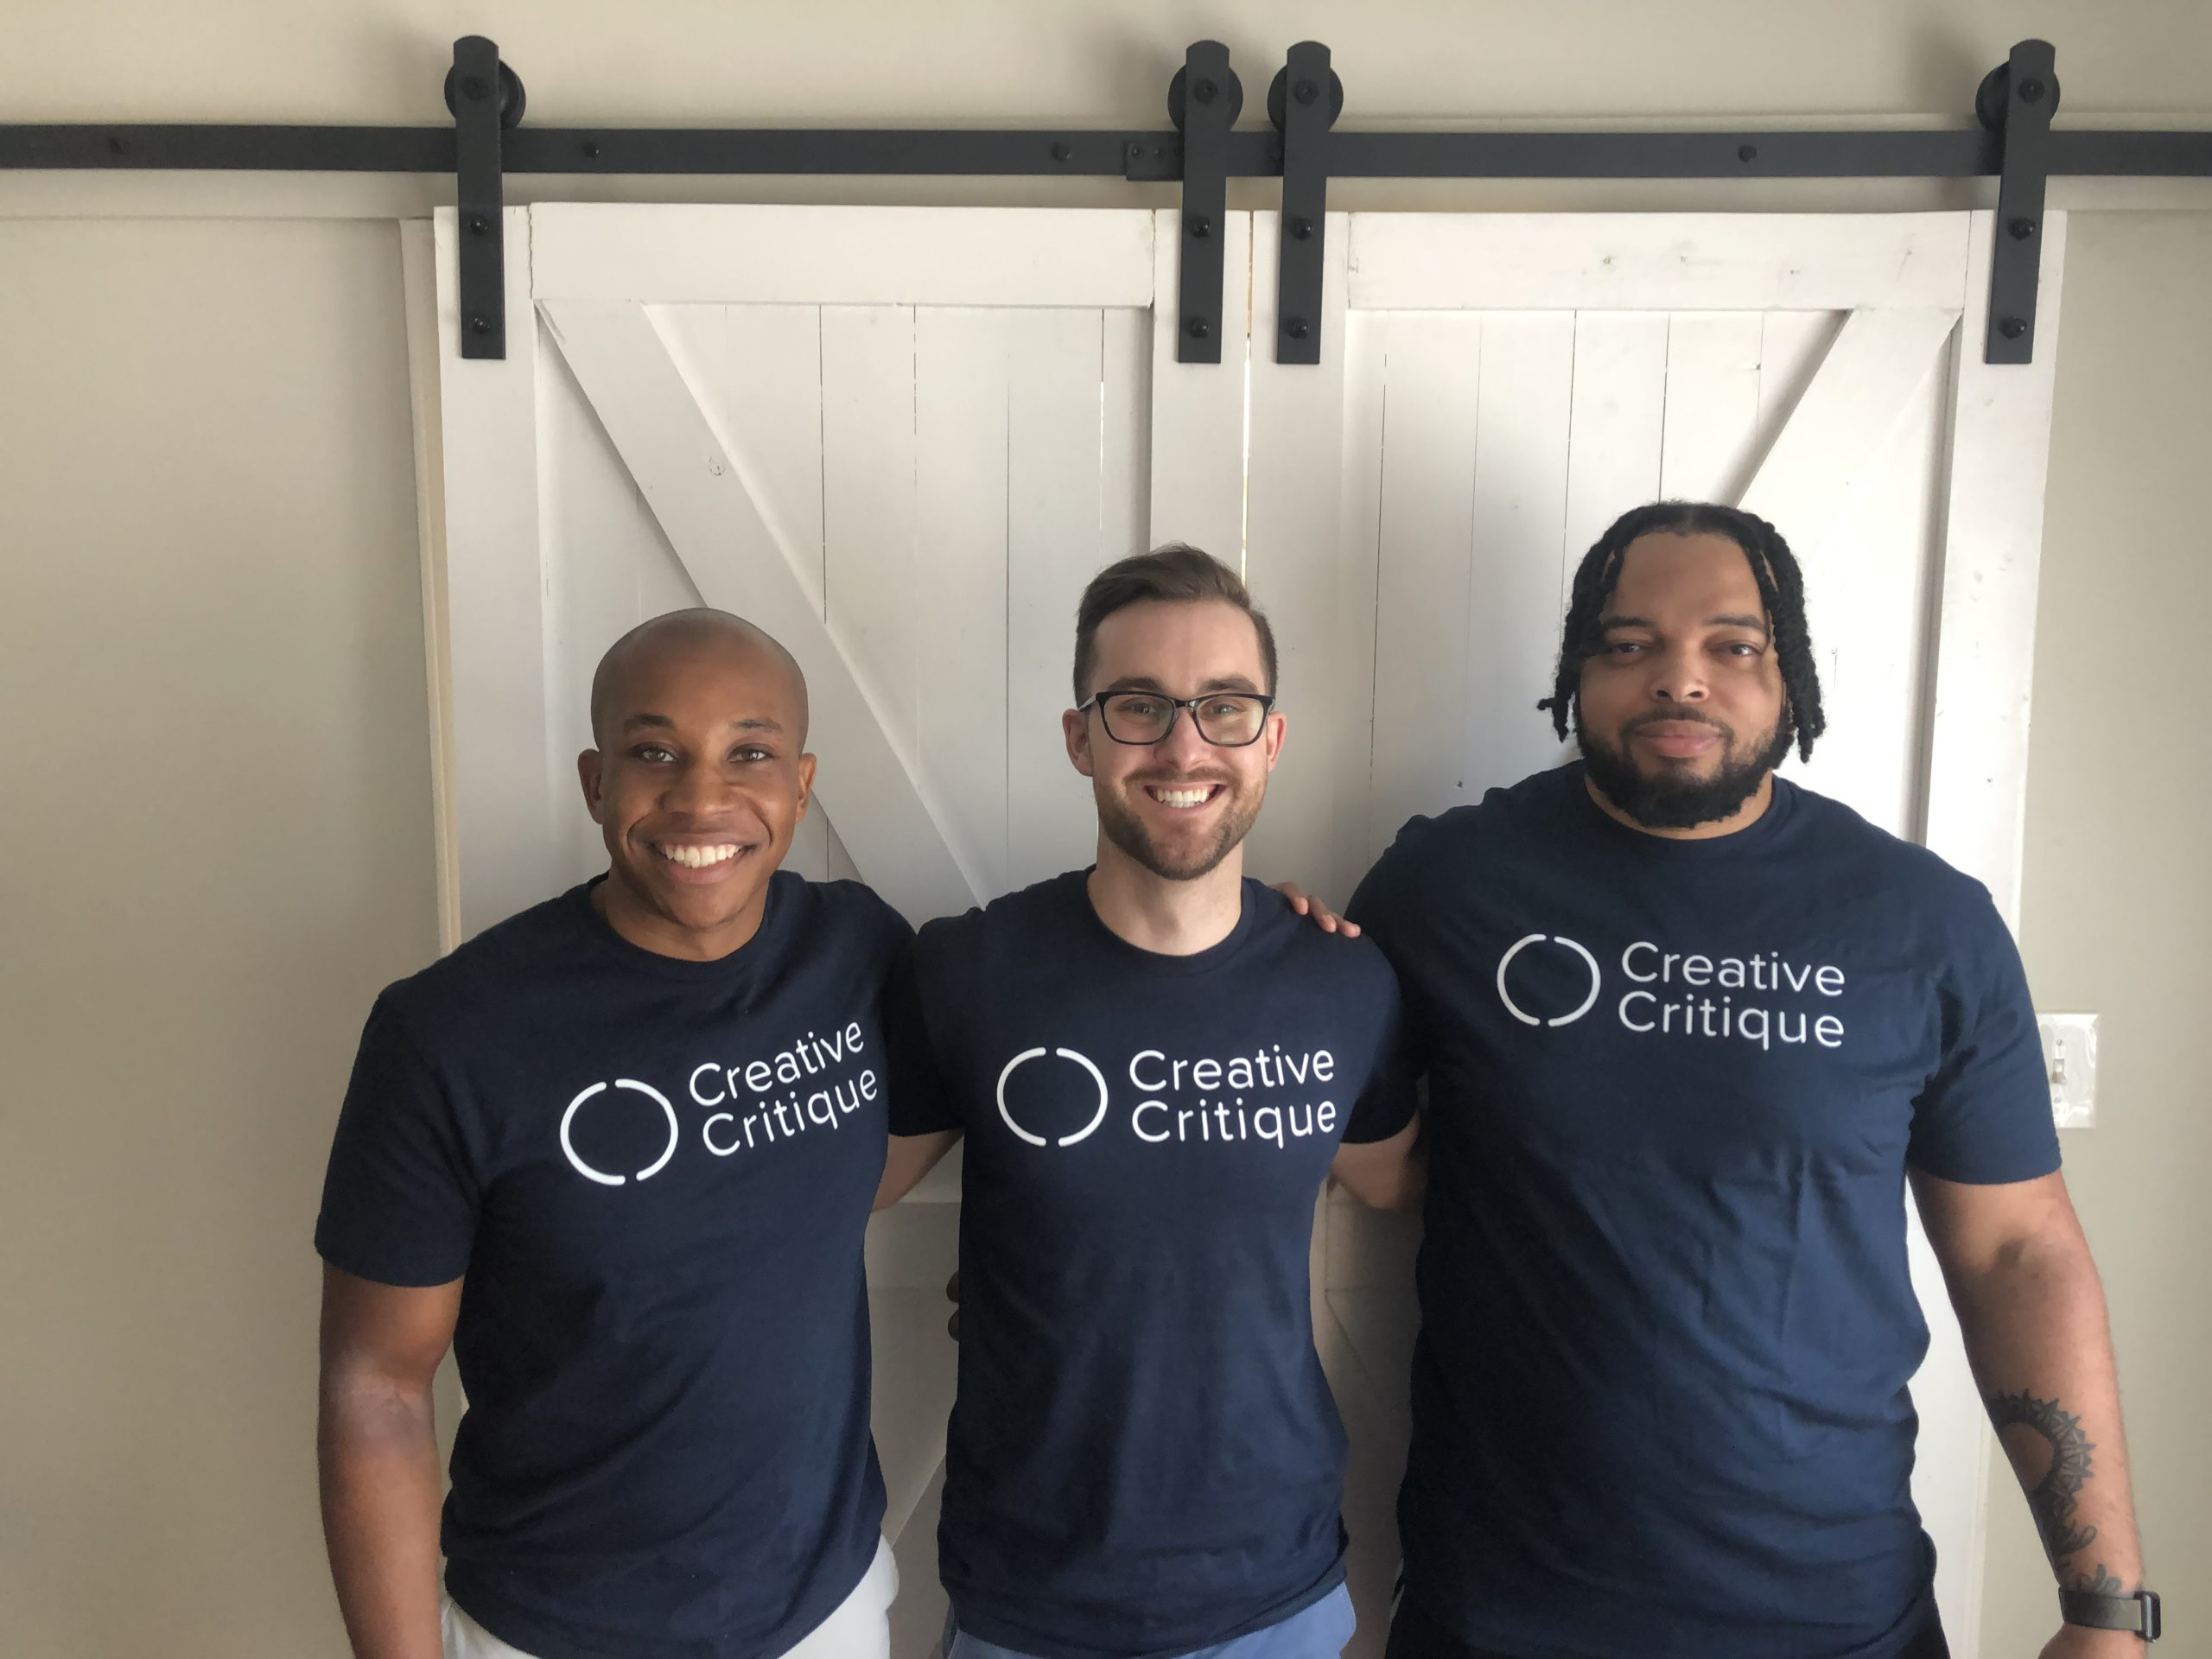 Meet The Atlanta Team Building An Online Space For ...